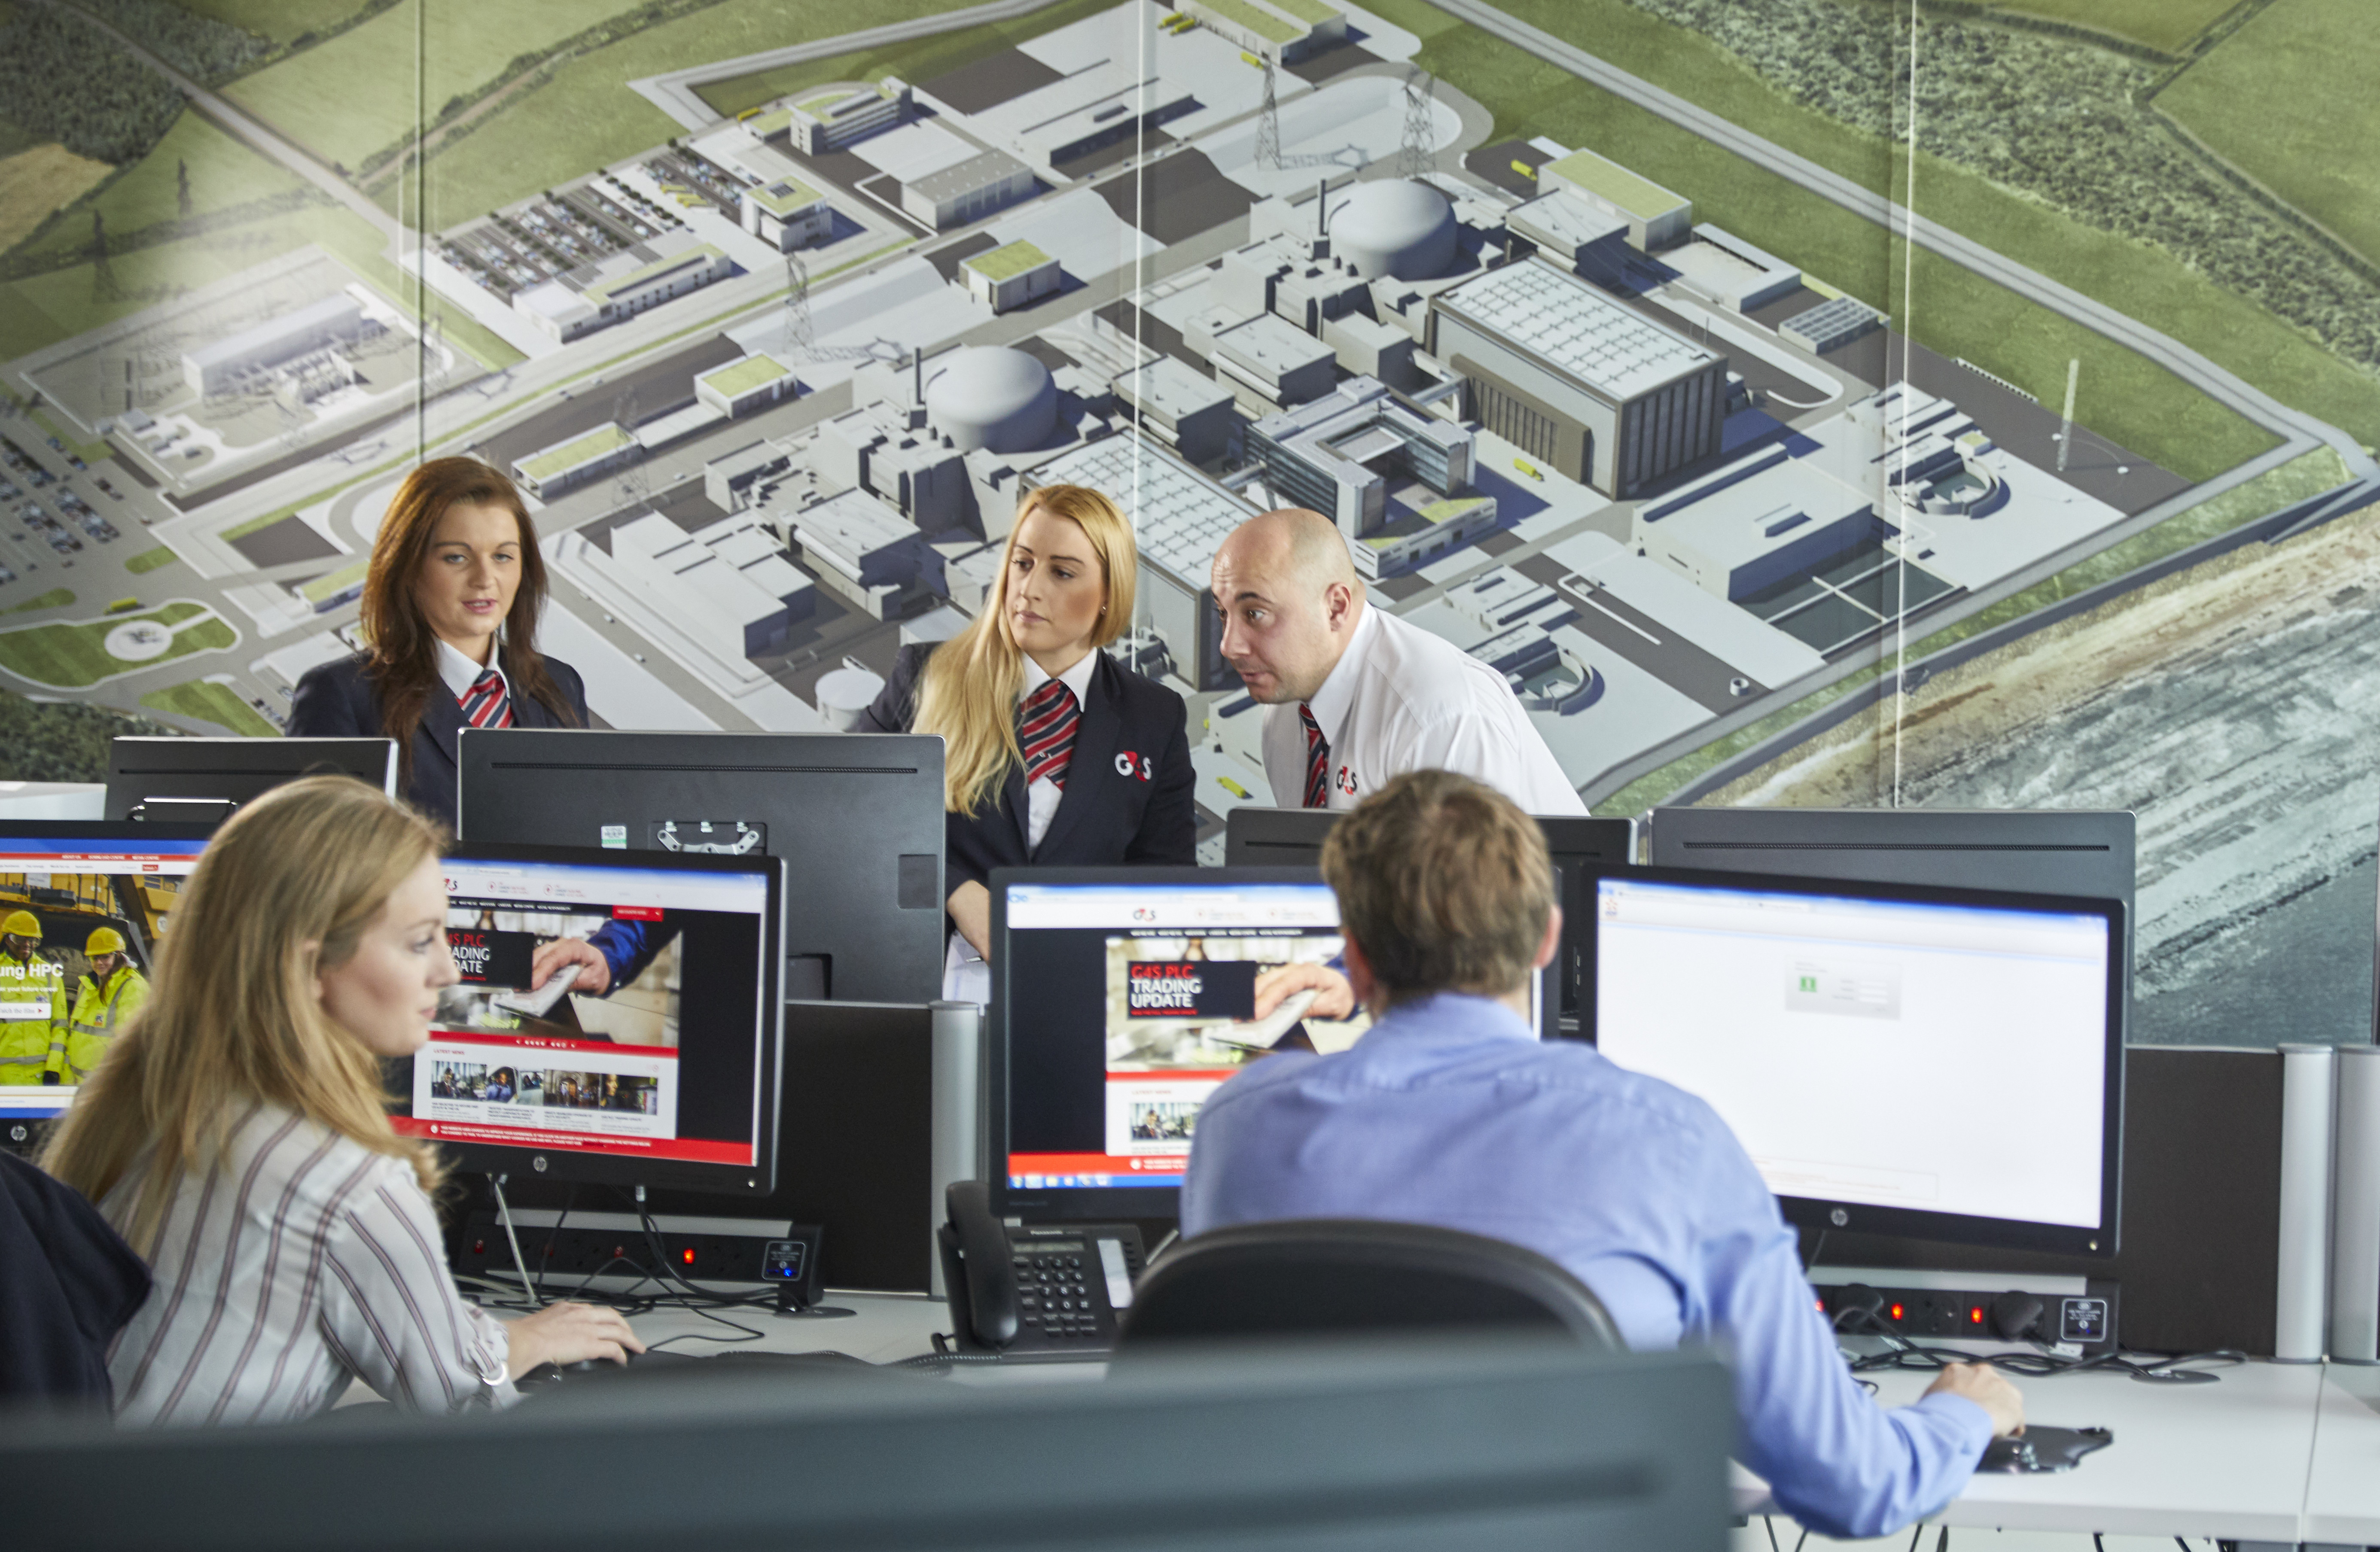 Security Control Room at Hinkley Point C